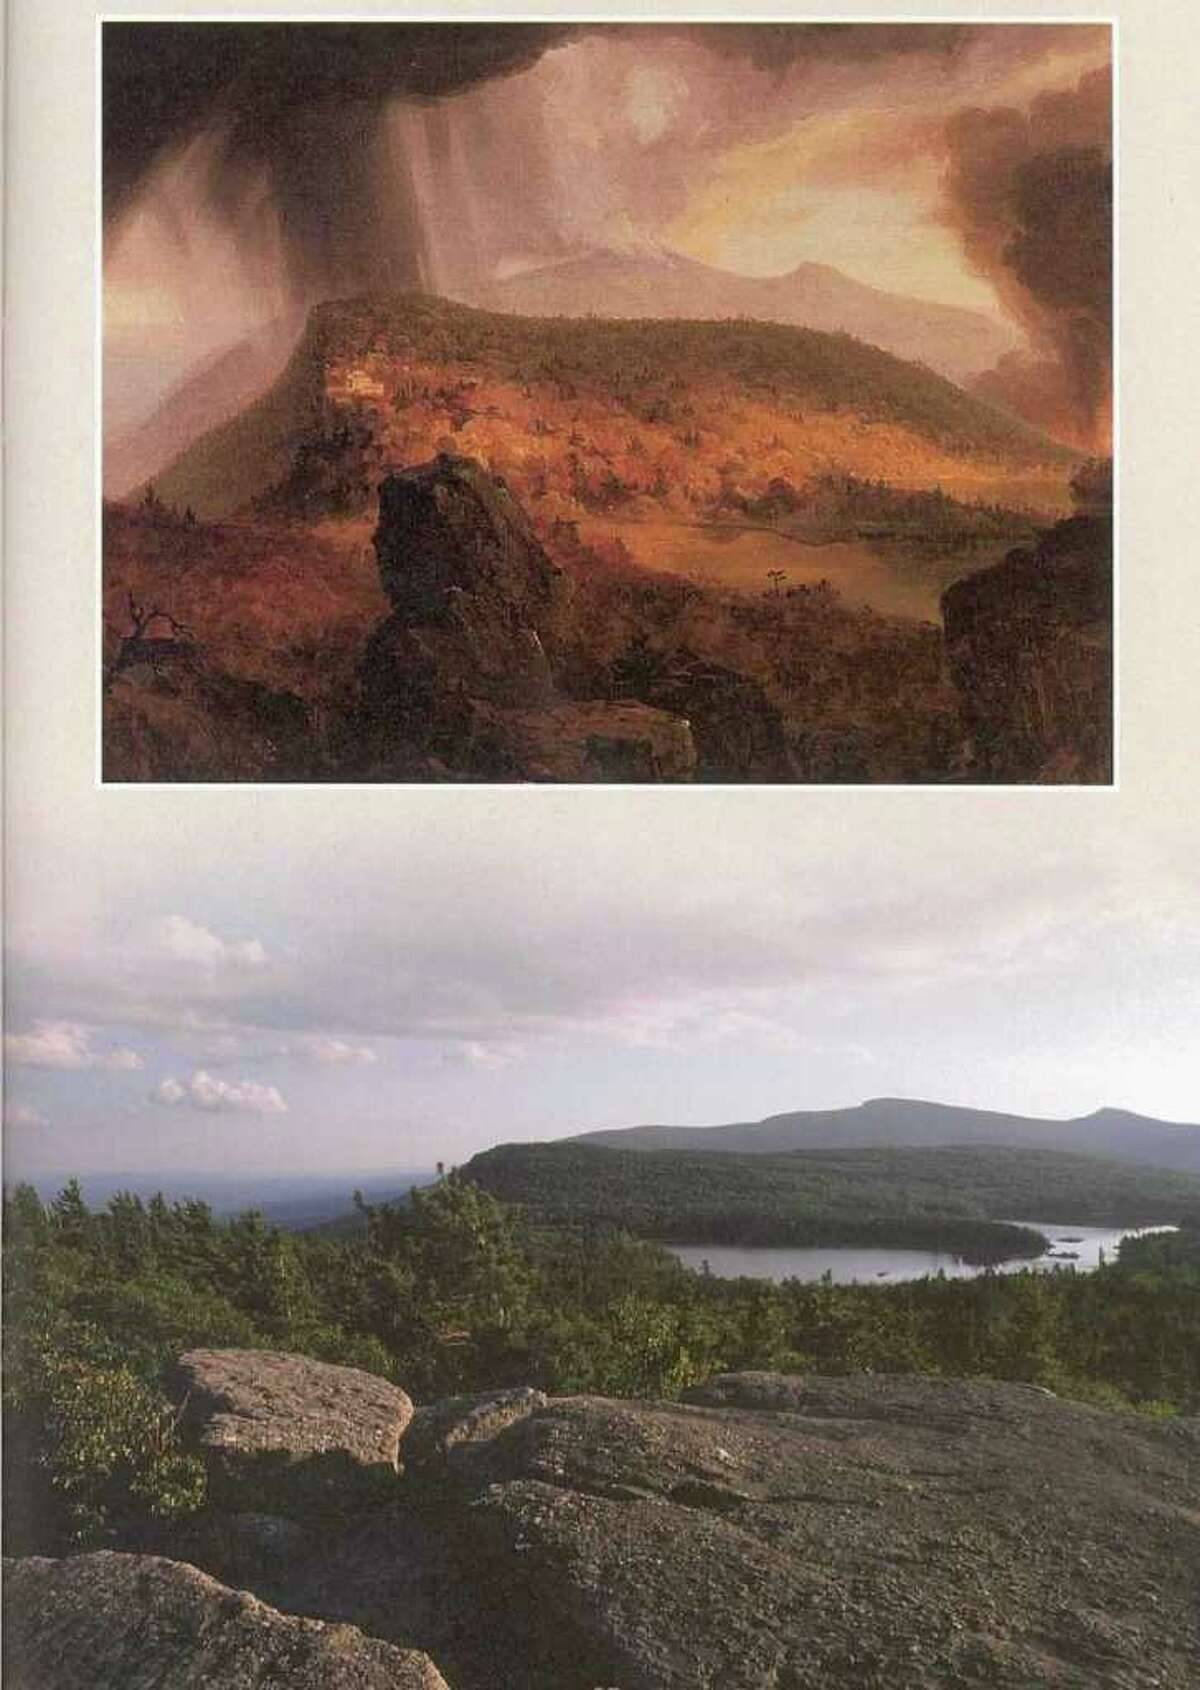 """Thomas Cole, """"The Catskill Mountain House: The Four Elements,"""" 1843-44, oil on canvas, private collections. View from Sunset Rock today"""